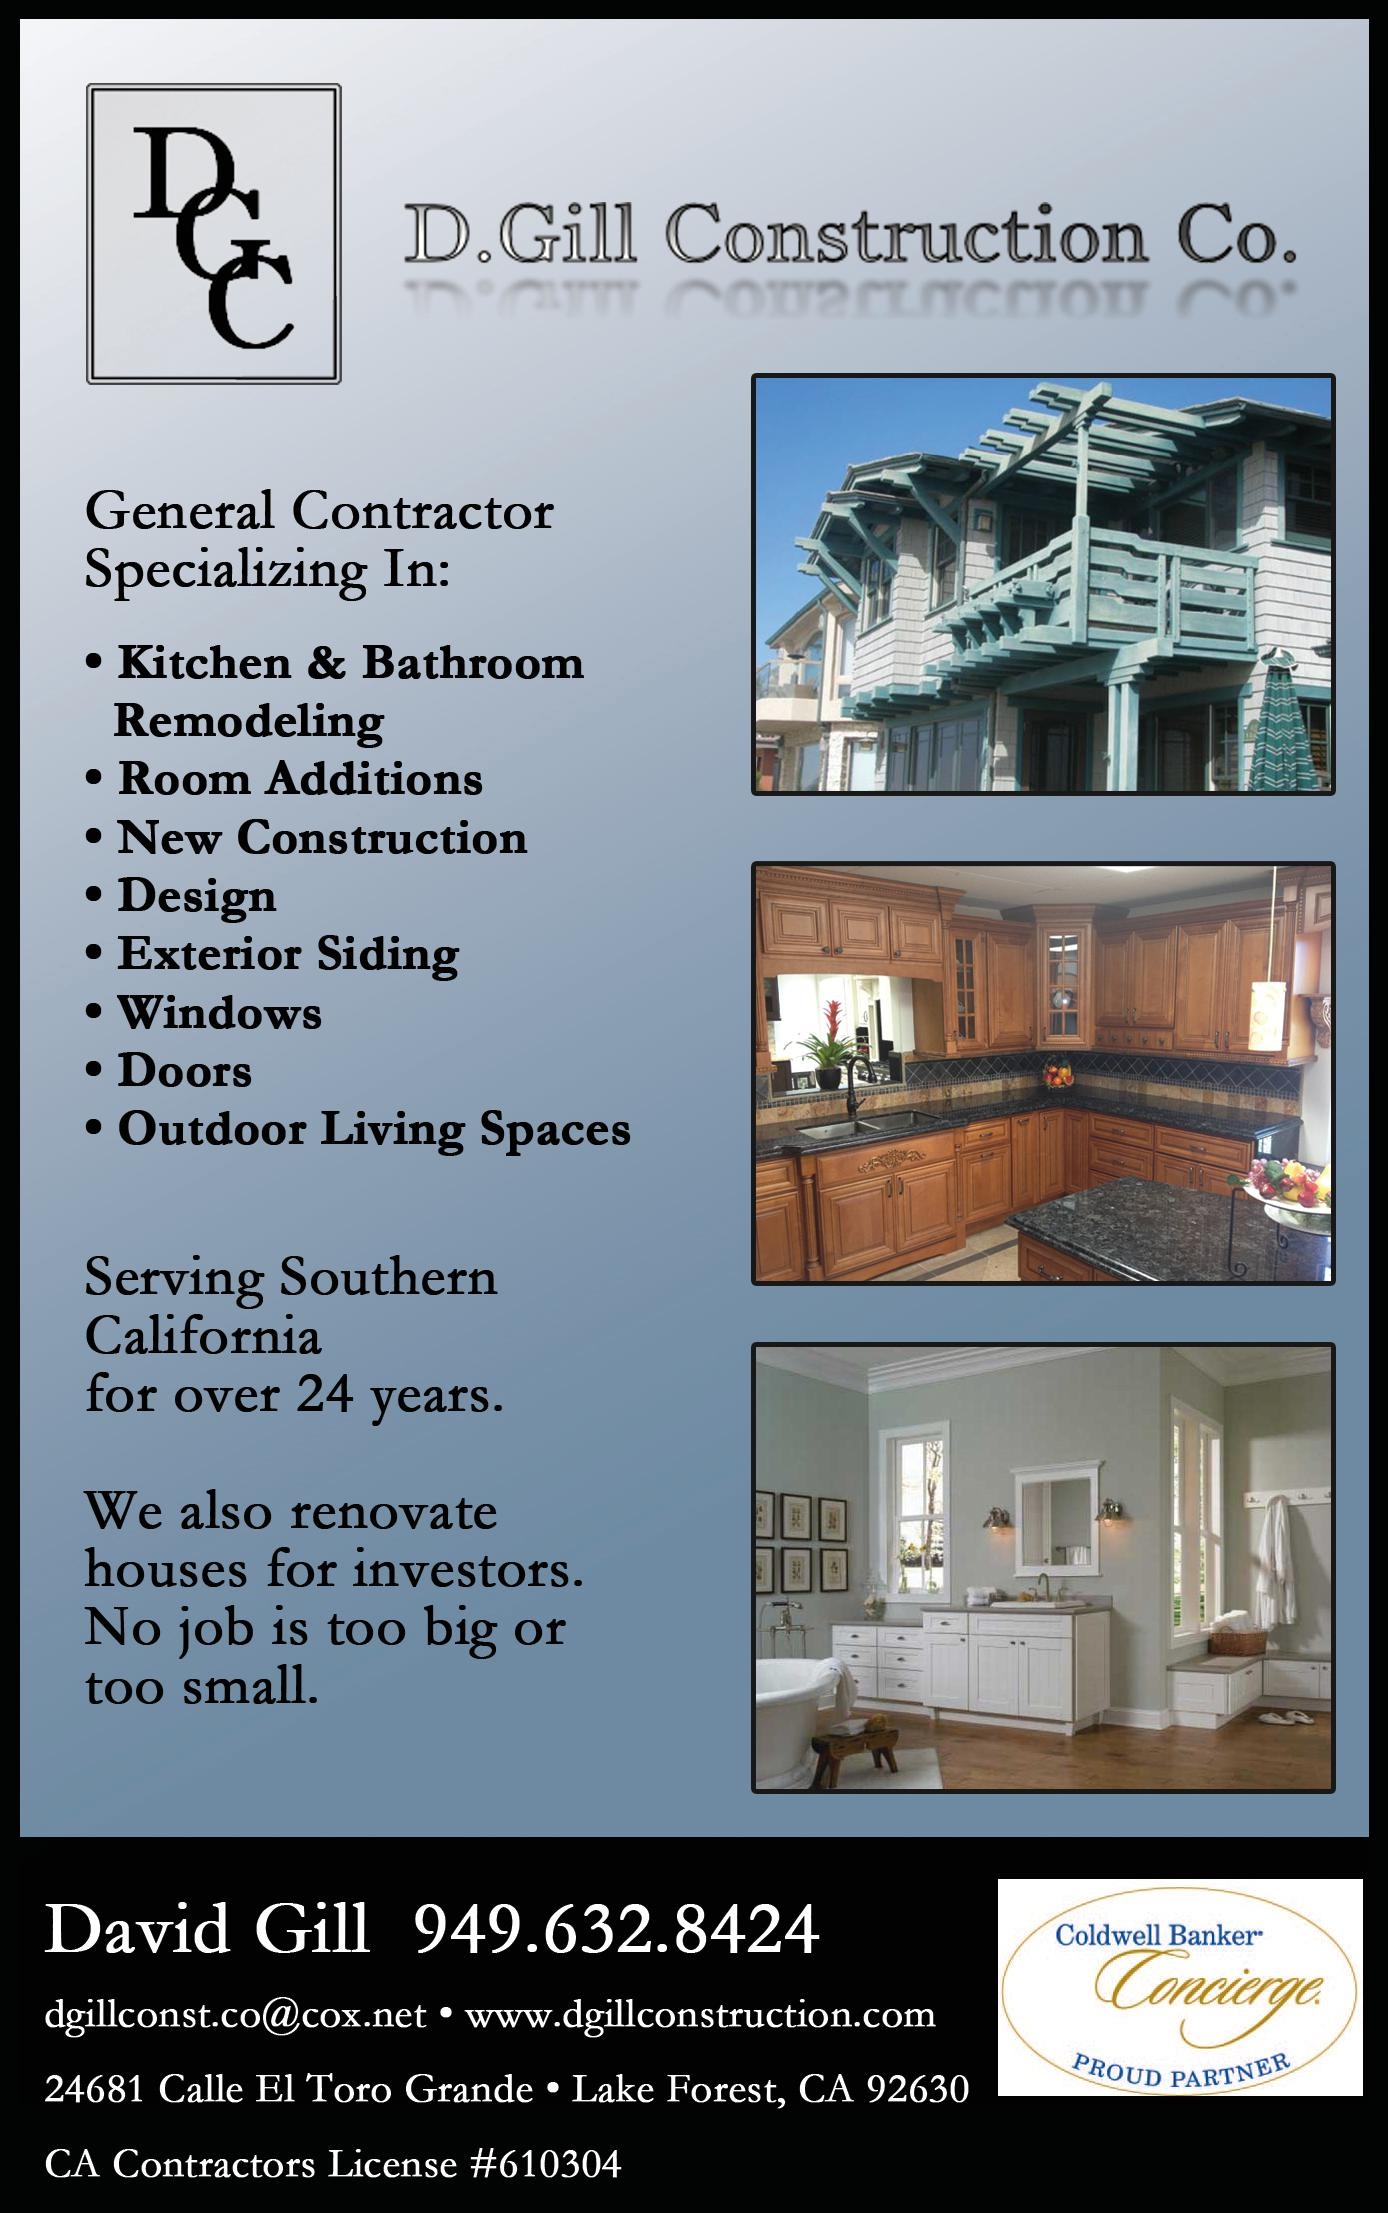 D. Gill Construction Co.